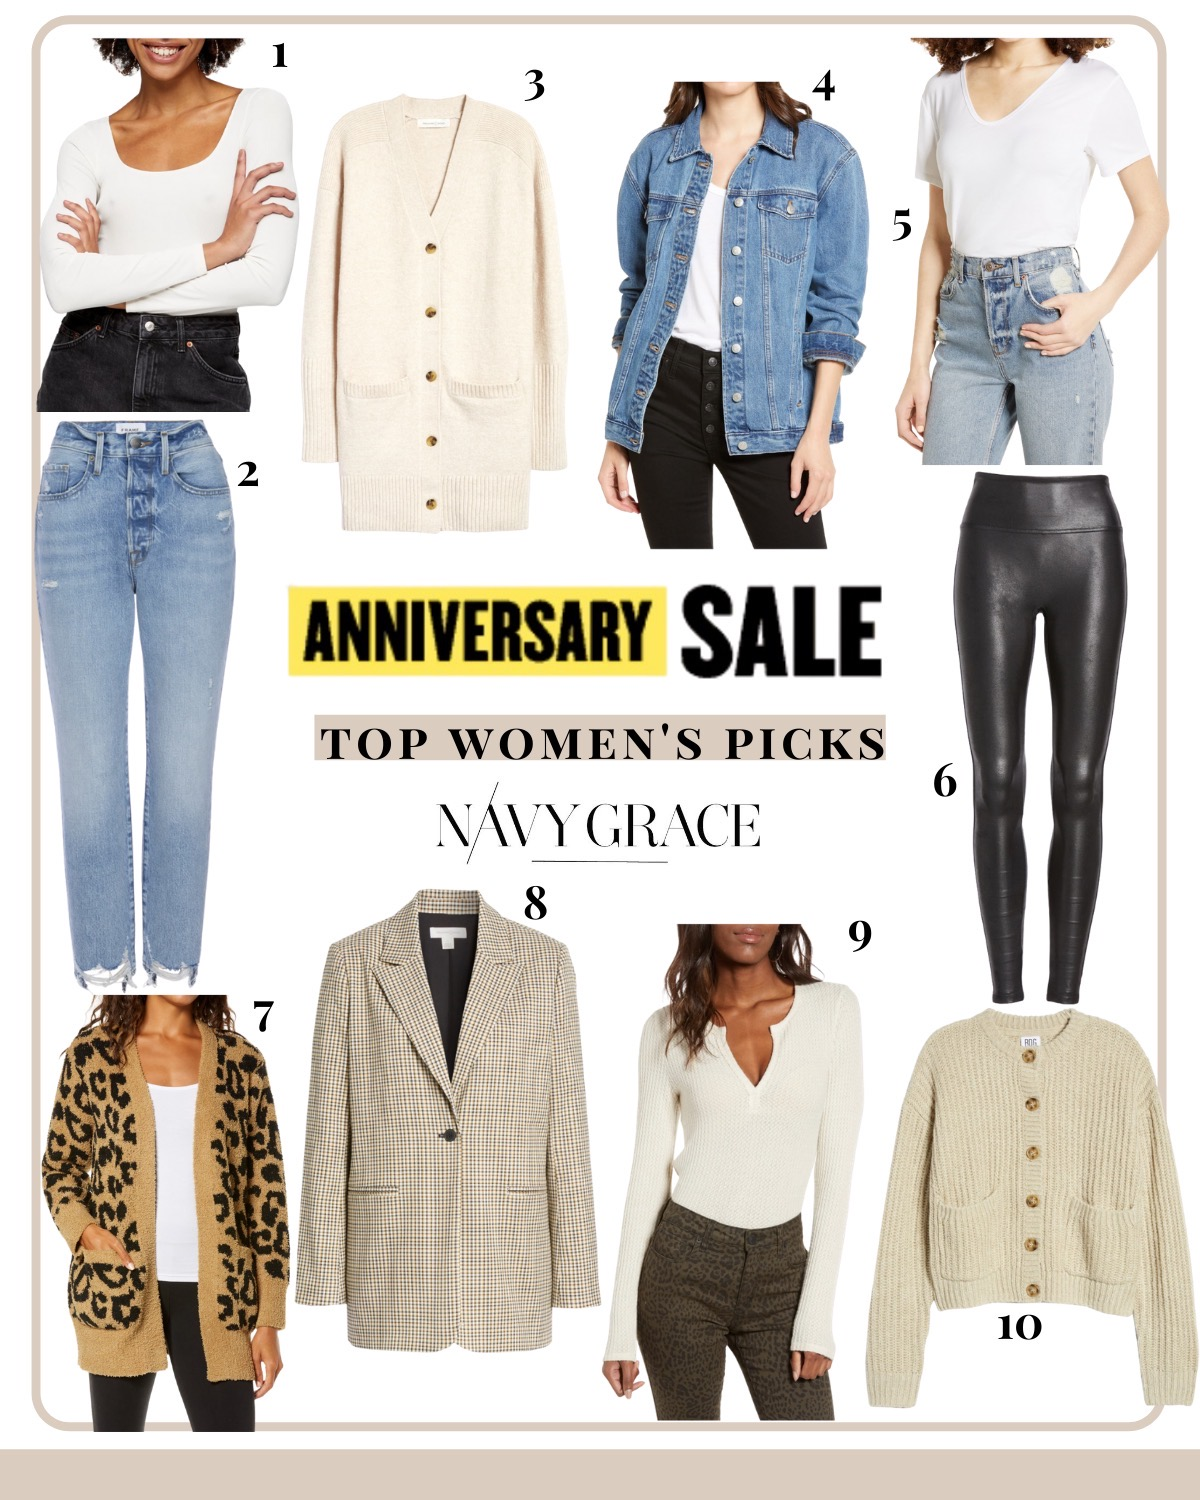 Nordstrom Anniversary Sale by popular San Diego fashion blog, Navy Grace: collage image of Spanx faux leather leggings, square neck body suite, frame high waist denim, Cream longline cardigan, oversized Madewell denim jacket, basic v neck t-shirt, barefoot dreams leopard print cardigan, plaid blazer, thermal henley top, and cream stitch cardigan.